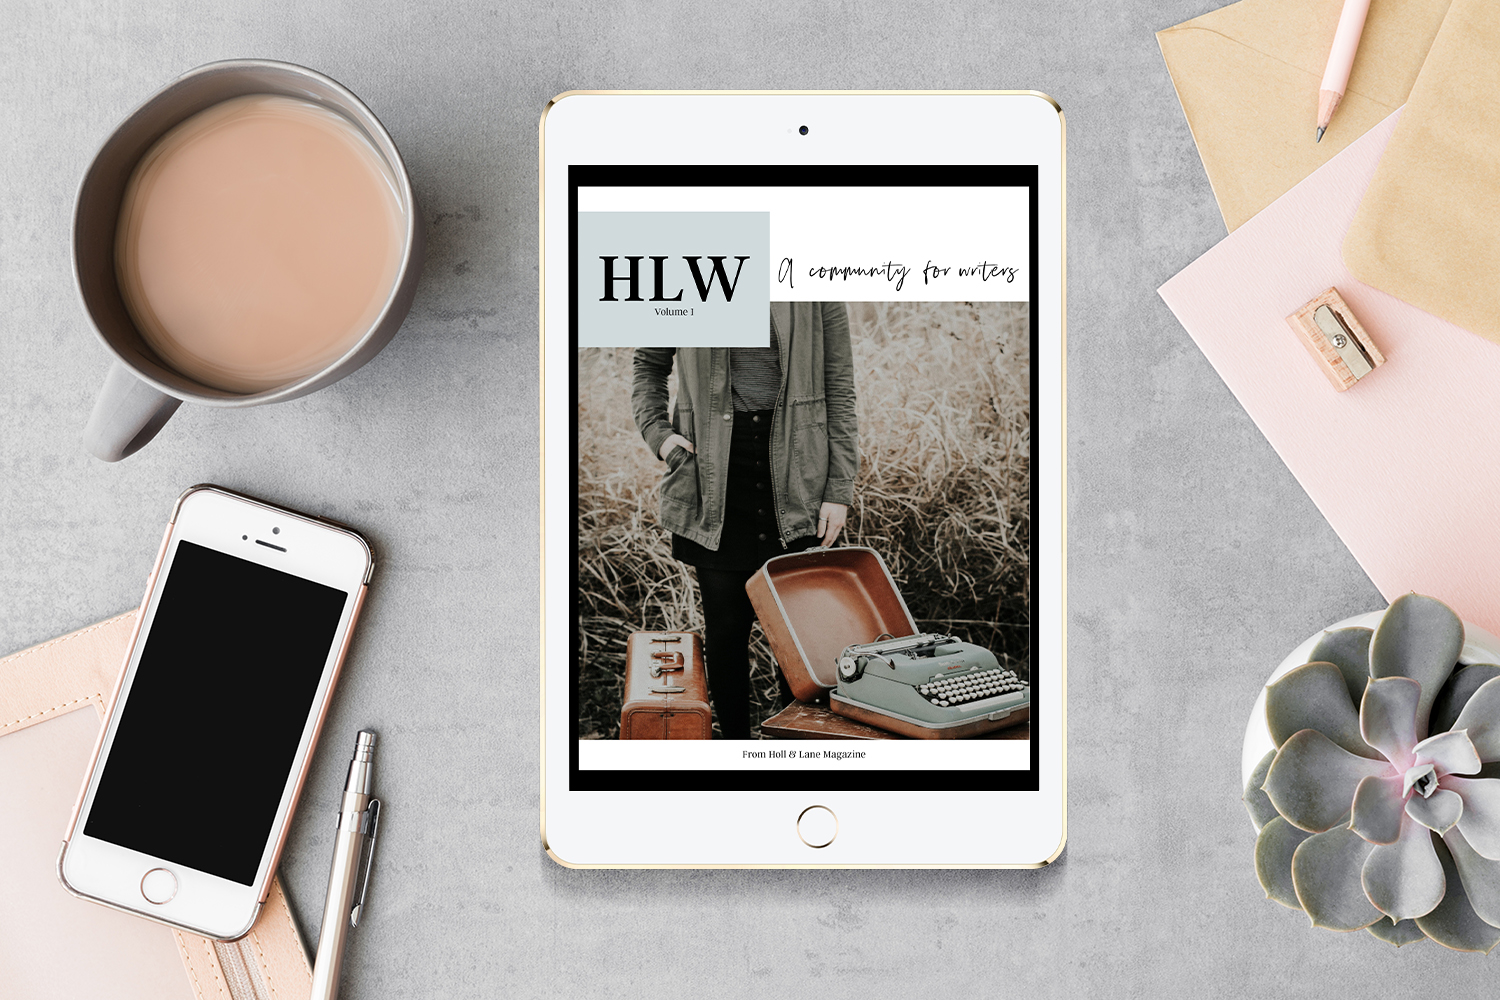 Introducing HLW Issue 1 - a free digital magazine for writers in the H&L Writes community.